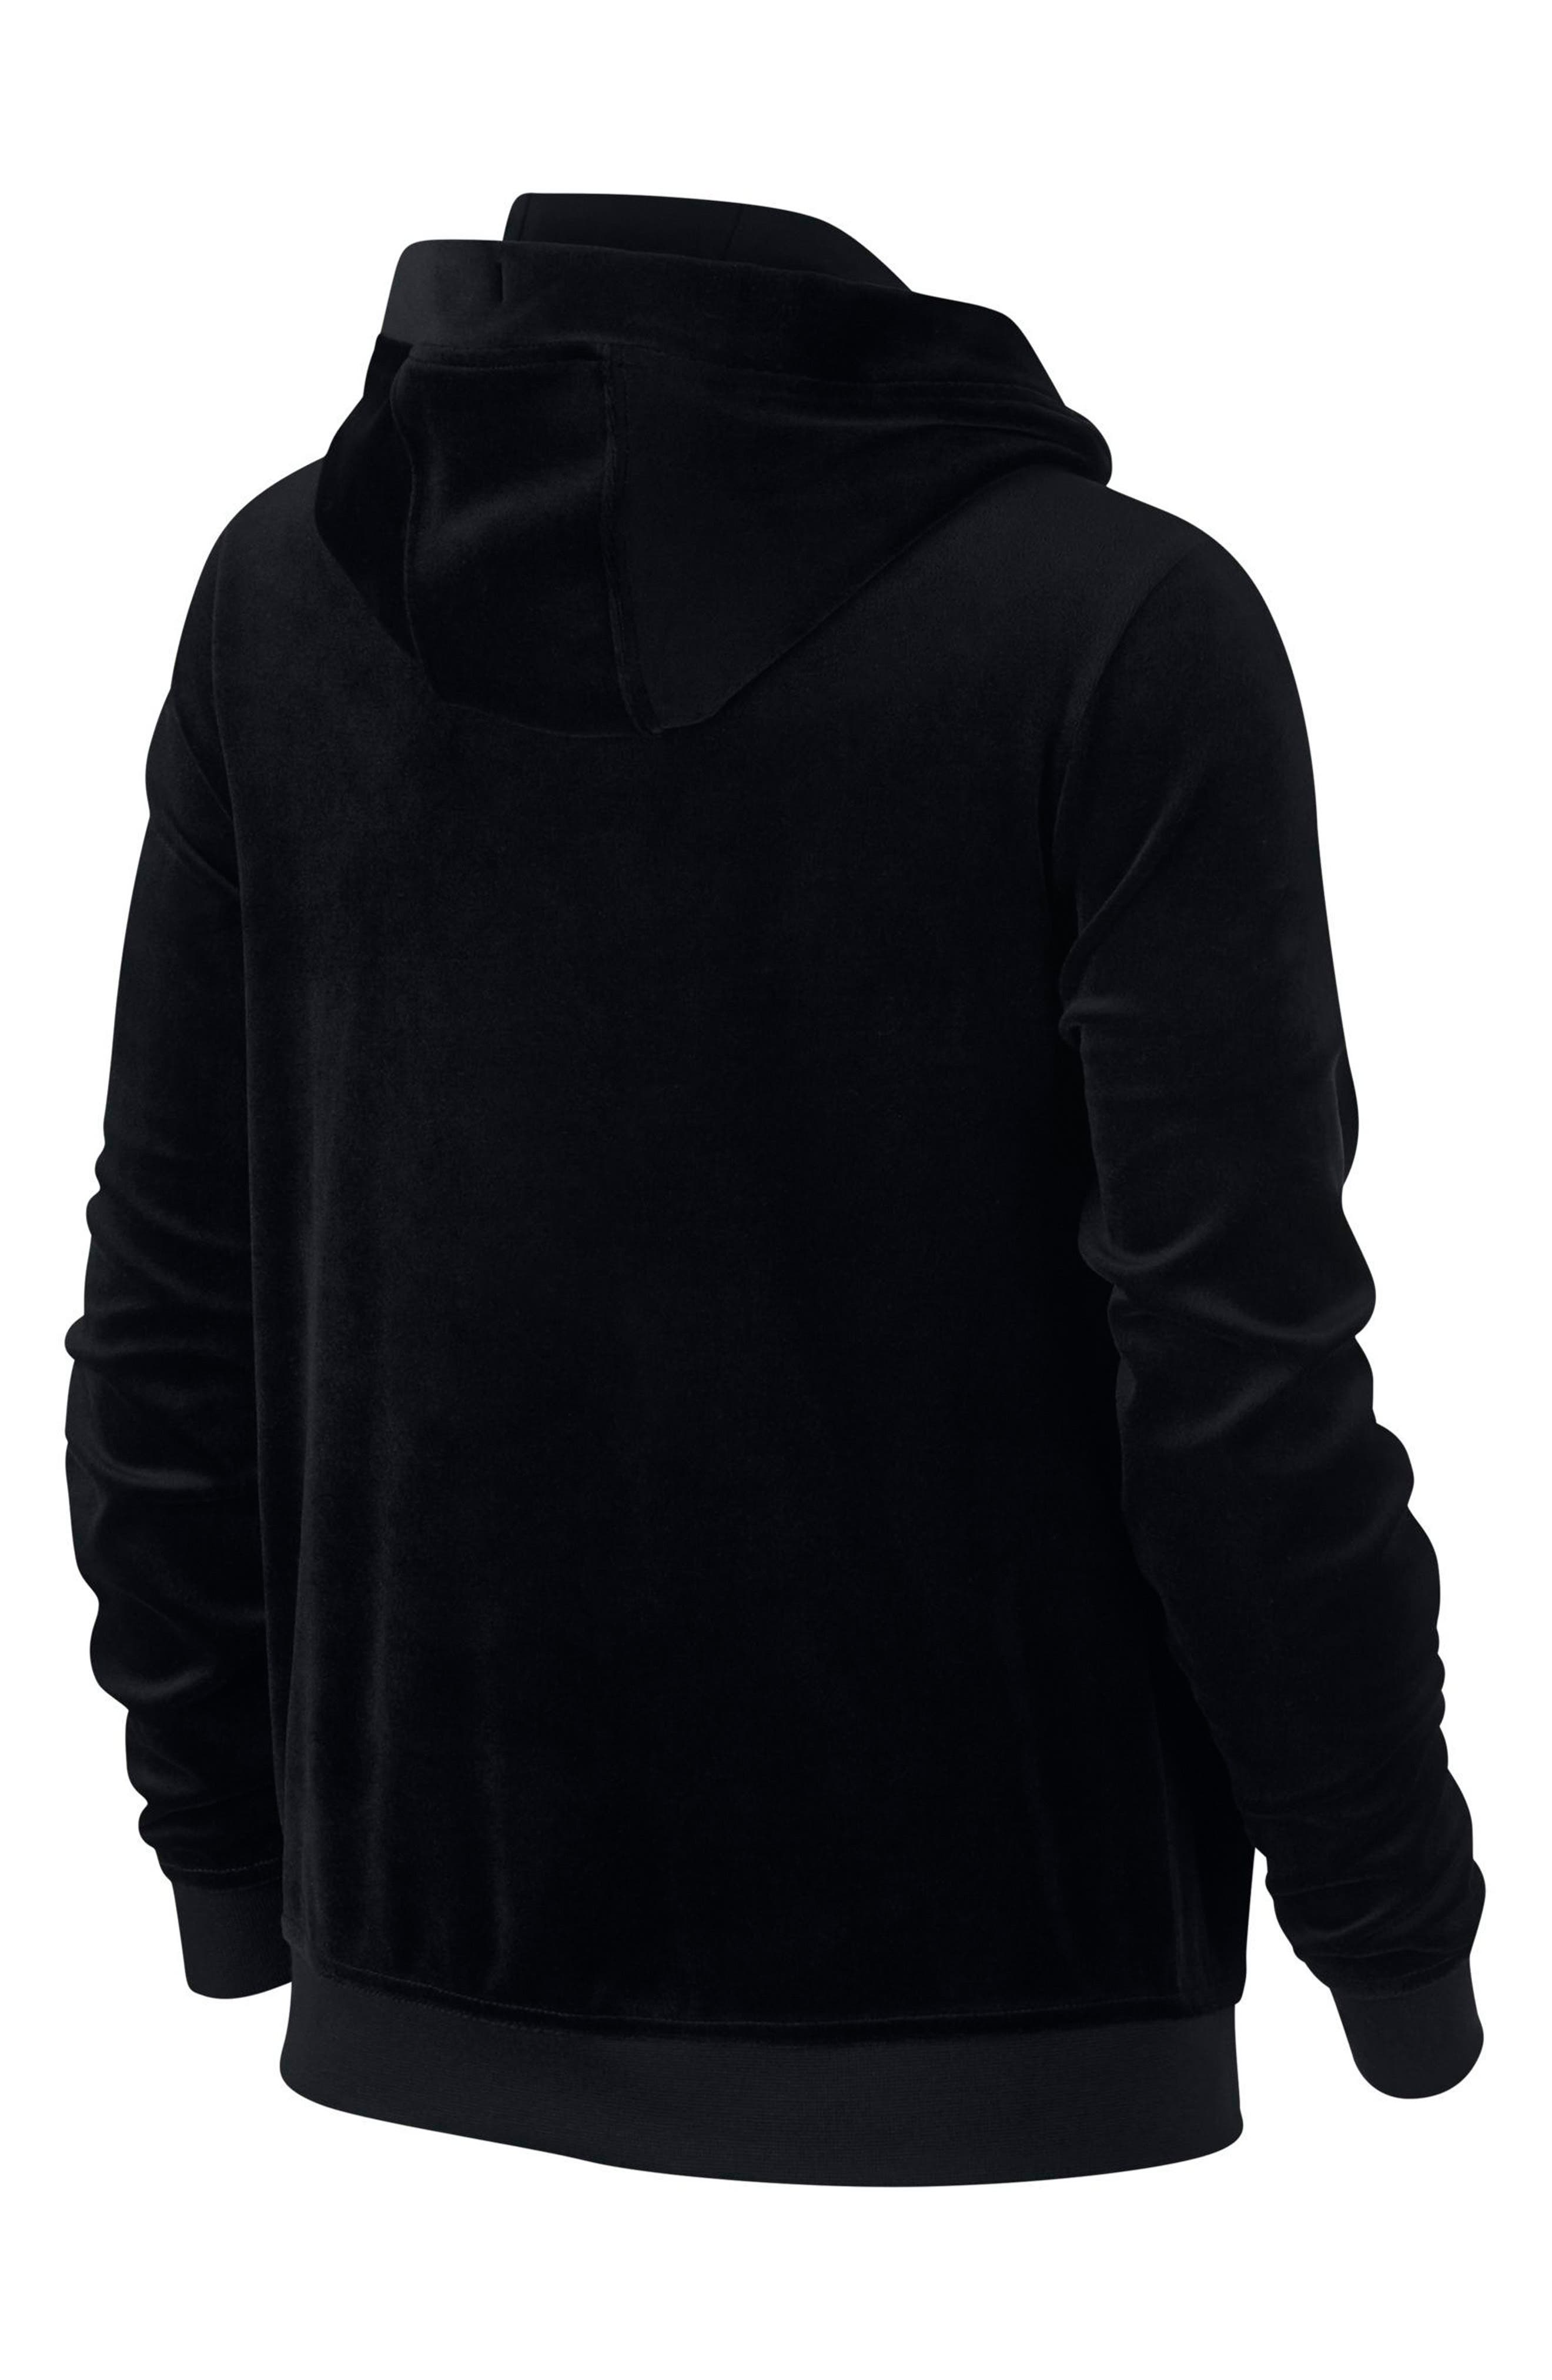 NIKE,                             Sportswear Velour Pullover Hoodie,                             Alternate thumbnail 2, color,                             010